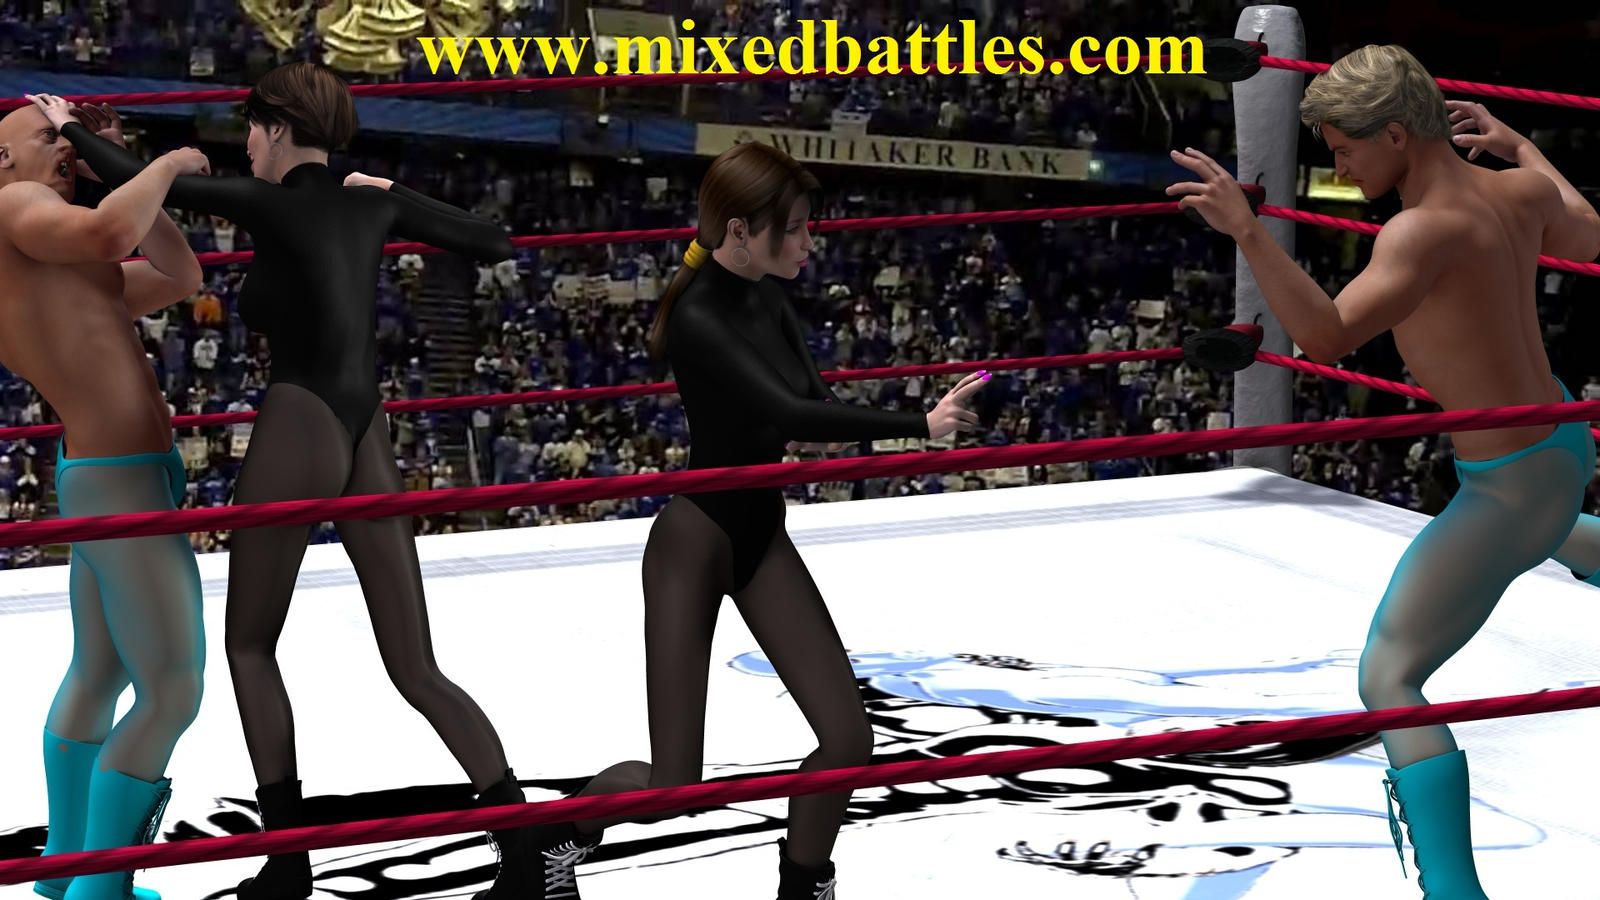 The fuck female tag team domination 2:26?